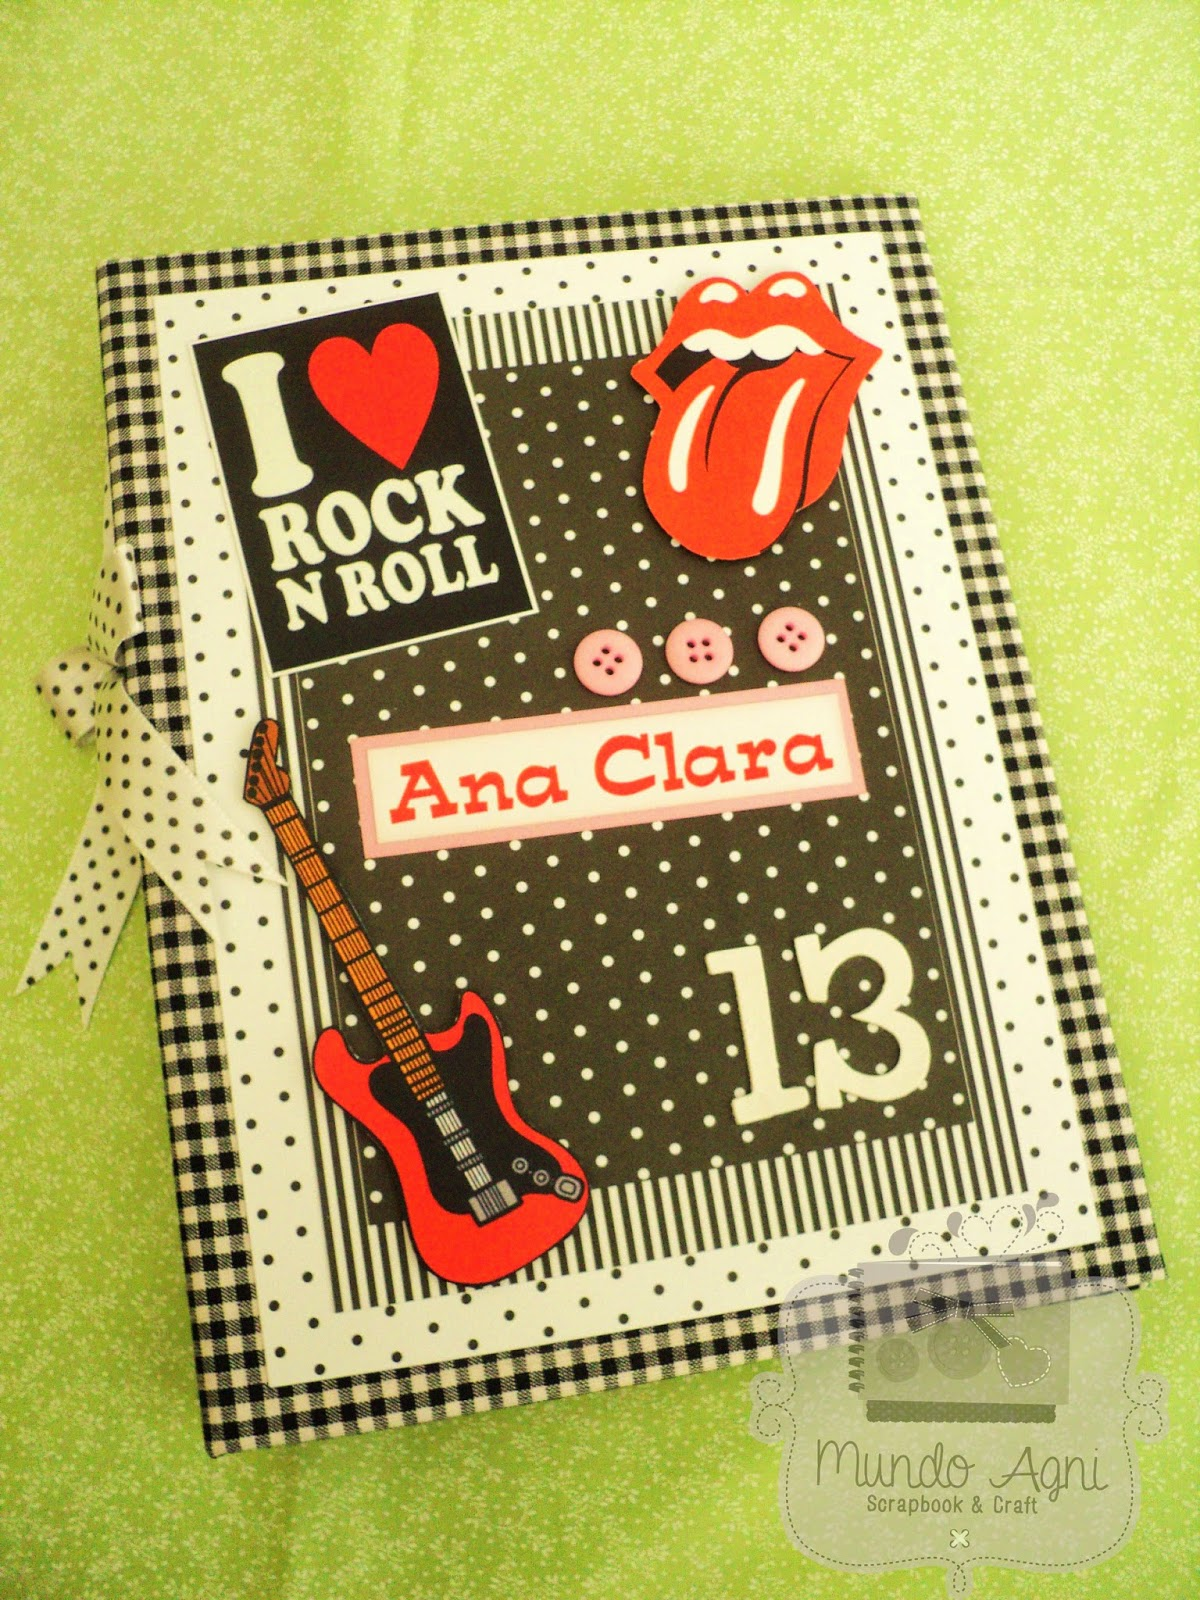 Rock N Roll Interieur Mundo Agni Scrapbook And Craft Album Para Fotos Rock N 39 Roll